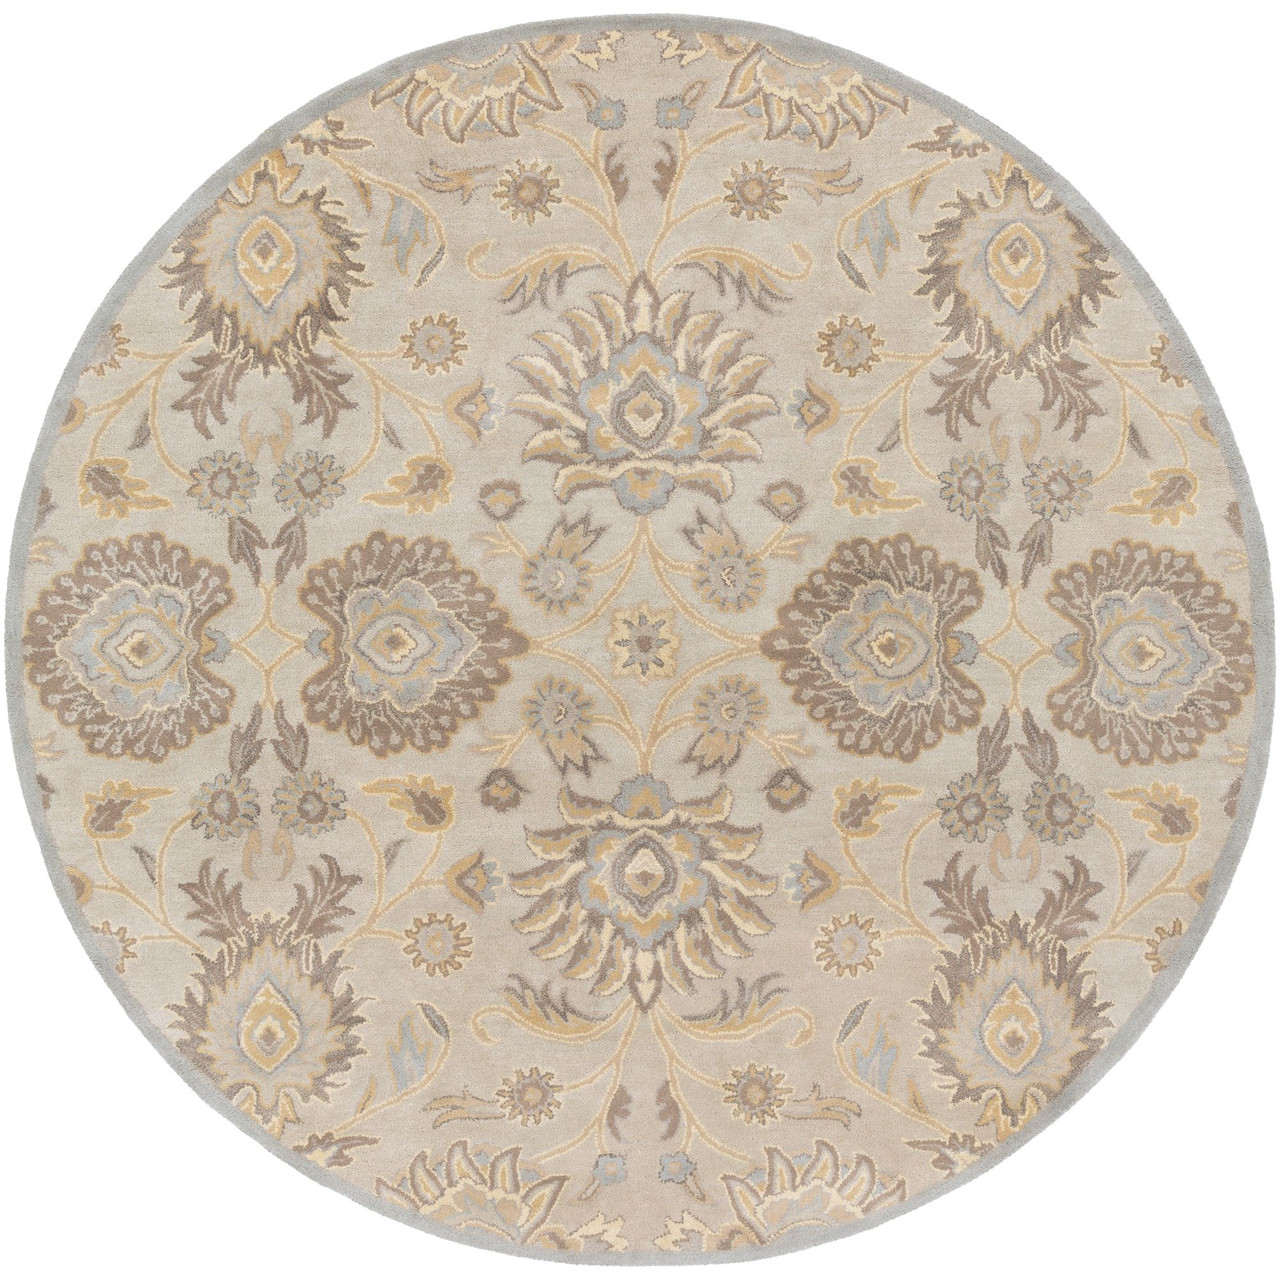 6 Botanical Floral Motif Light Gray And Brown Hand Tufted Wool Round Area Rug 33435152